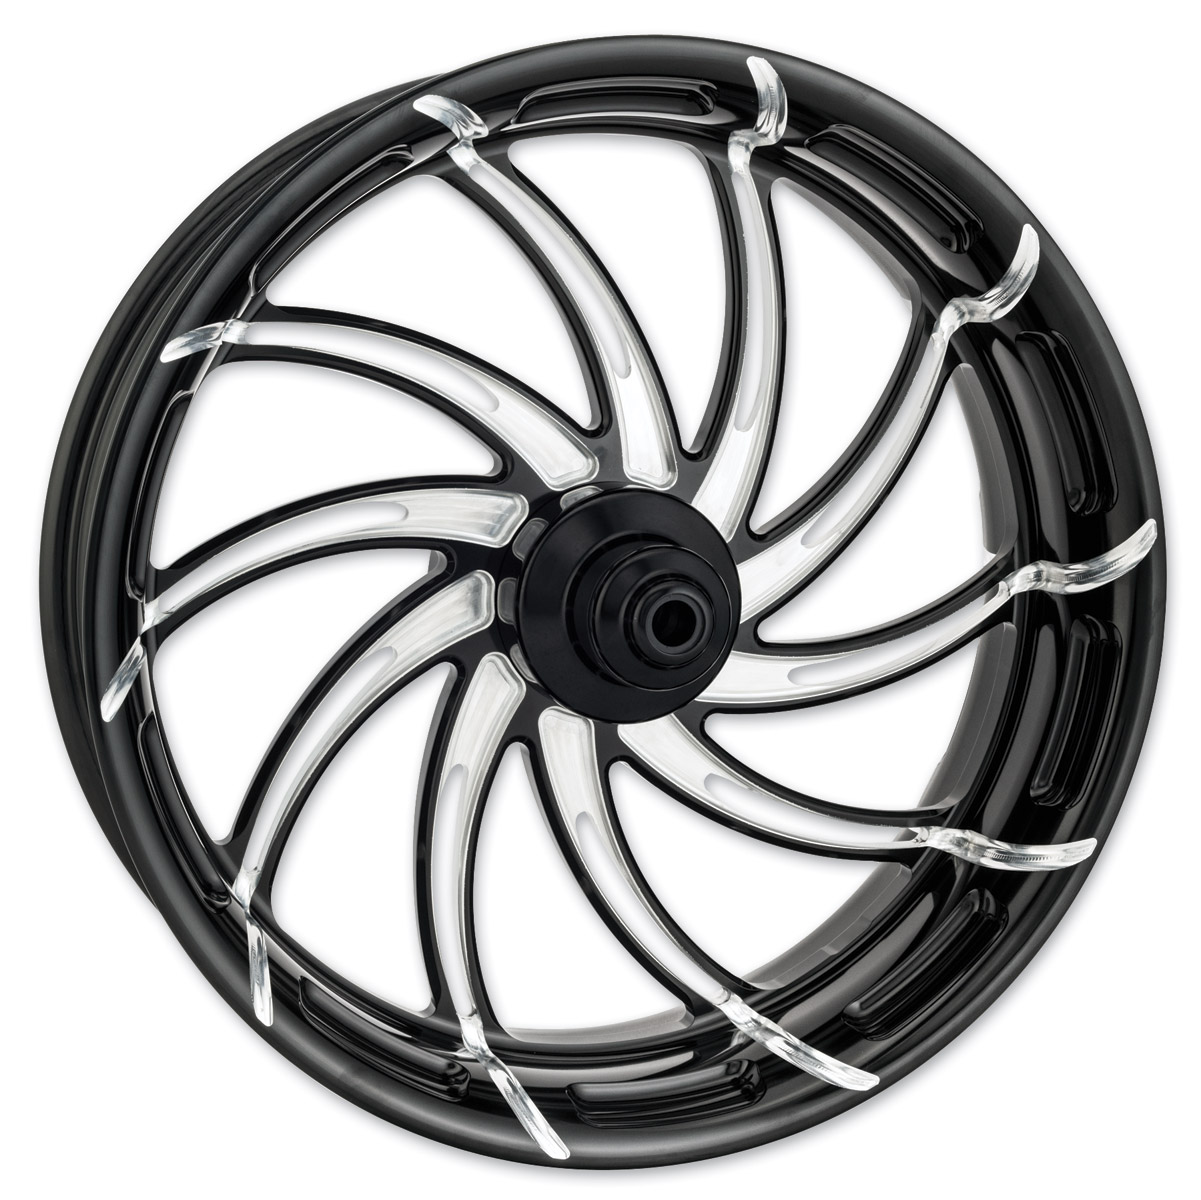 Performance Machine Supra Contrast Cut Platinum ABS Front Wheel, 23″ x 3.5″ with ABS